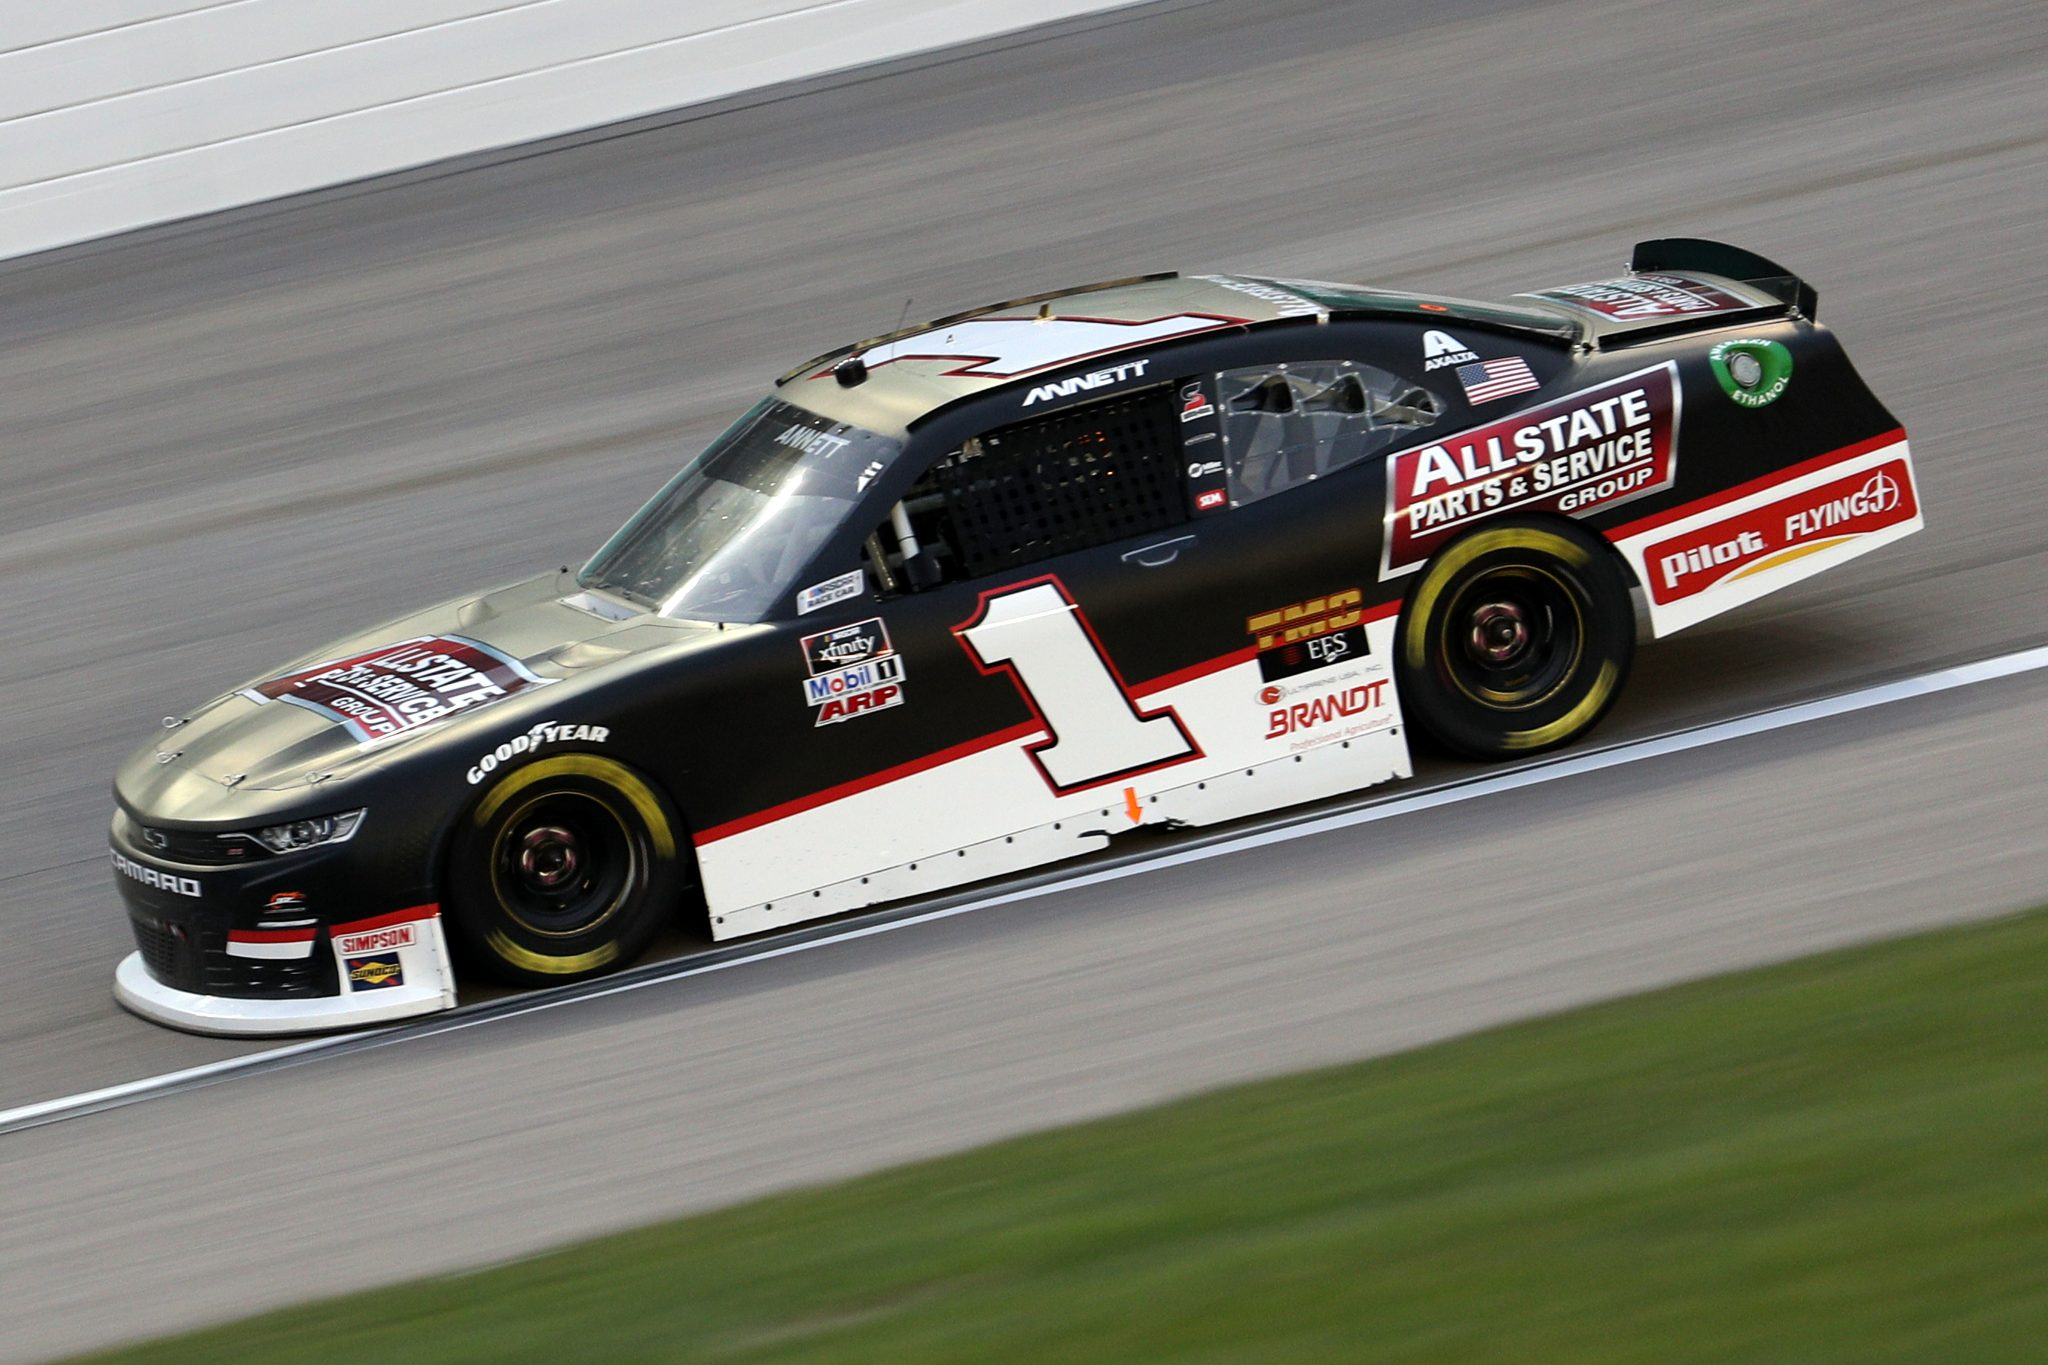 KANSAS CITY, KANSAS - OCTOBER 17: Michael Annett, driver of the #1 Allstate Parts & Service Group Chevrolet, drives during the NASCAR Xfinity Series Kansas Lottery 300 at Kansas Speedway on October 17, 2020 in Kansas City, Kansas. (Photo by Chris Graythen/Getty Images) | Getty Images